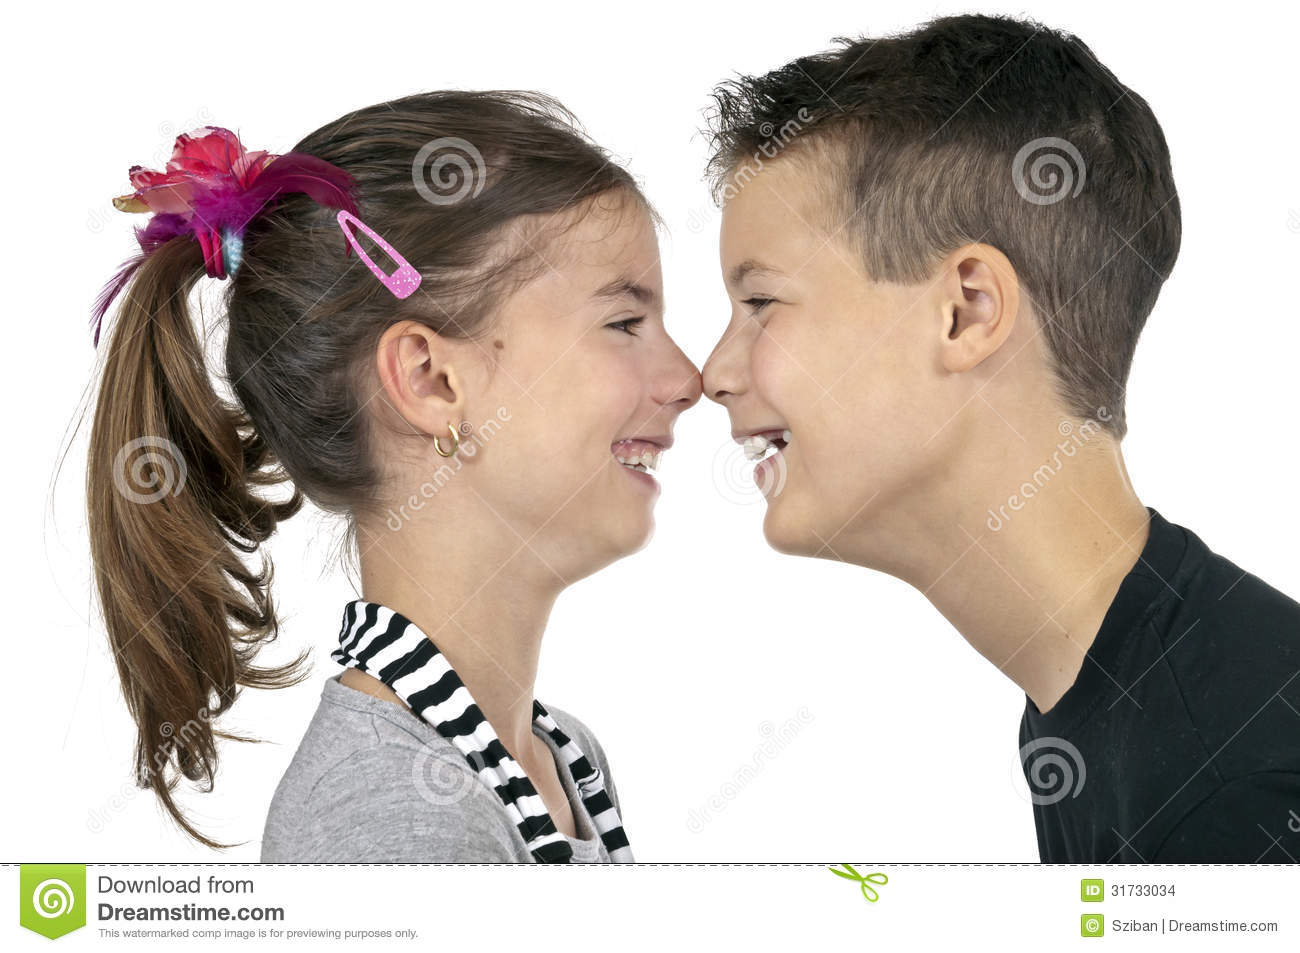 Nose kisses stock photo. Image of face, carefree, child ...